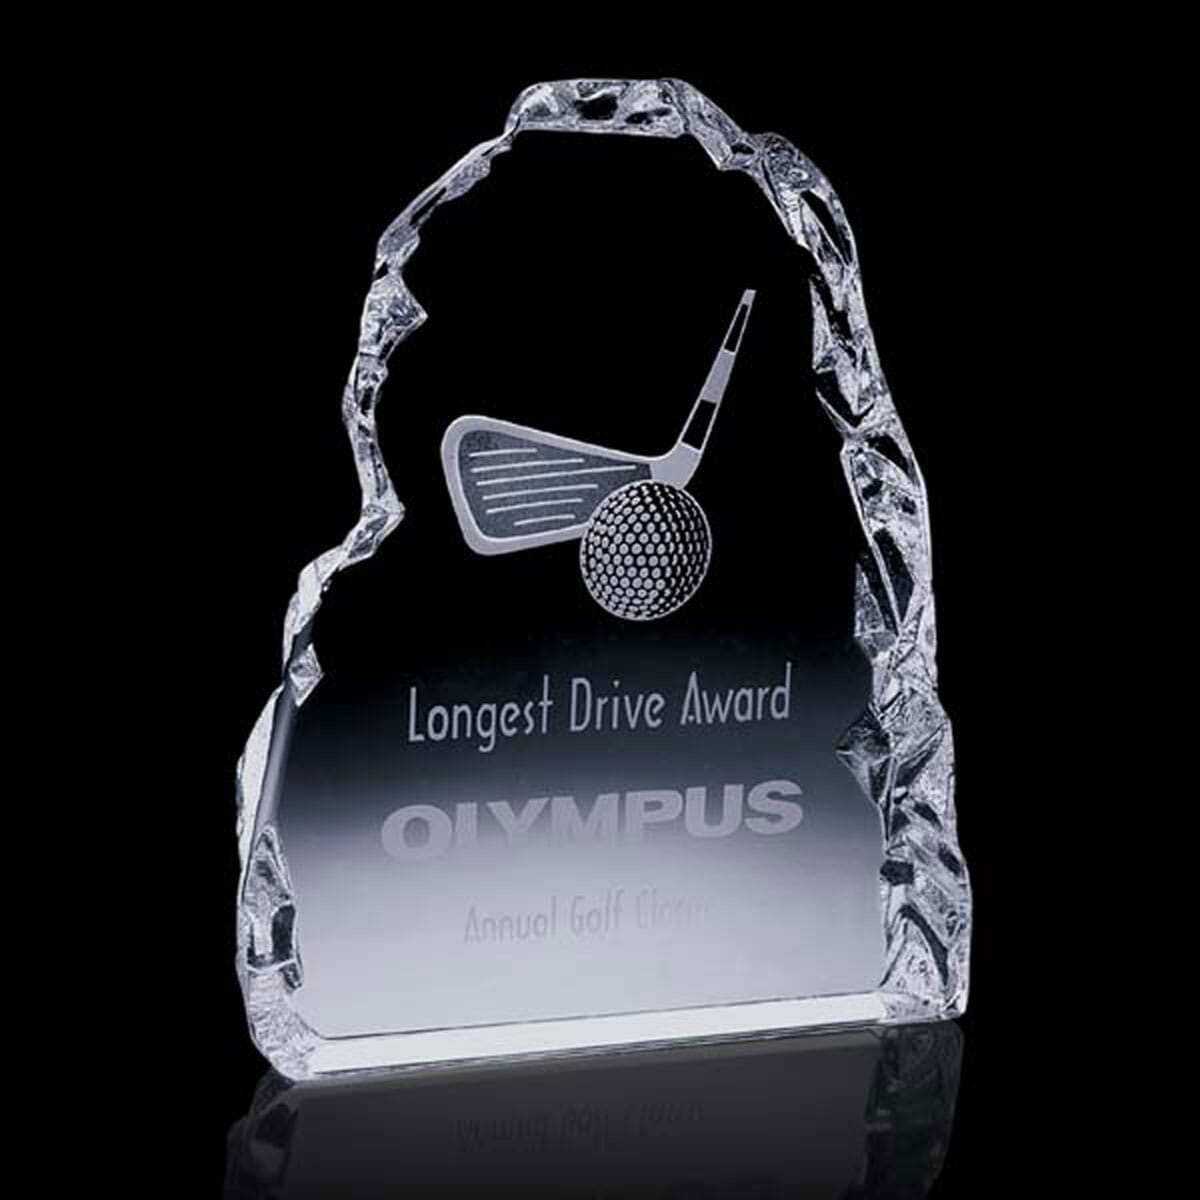 Laser Engraved Golf Award